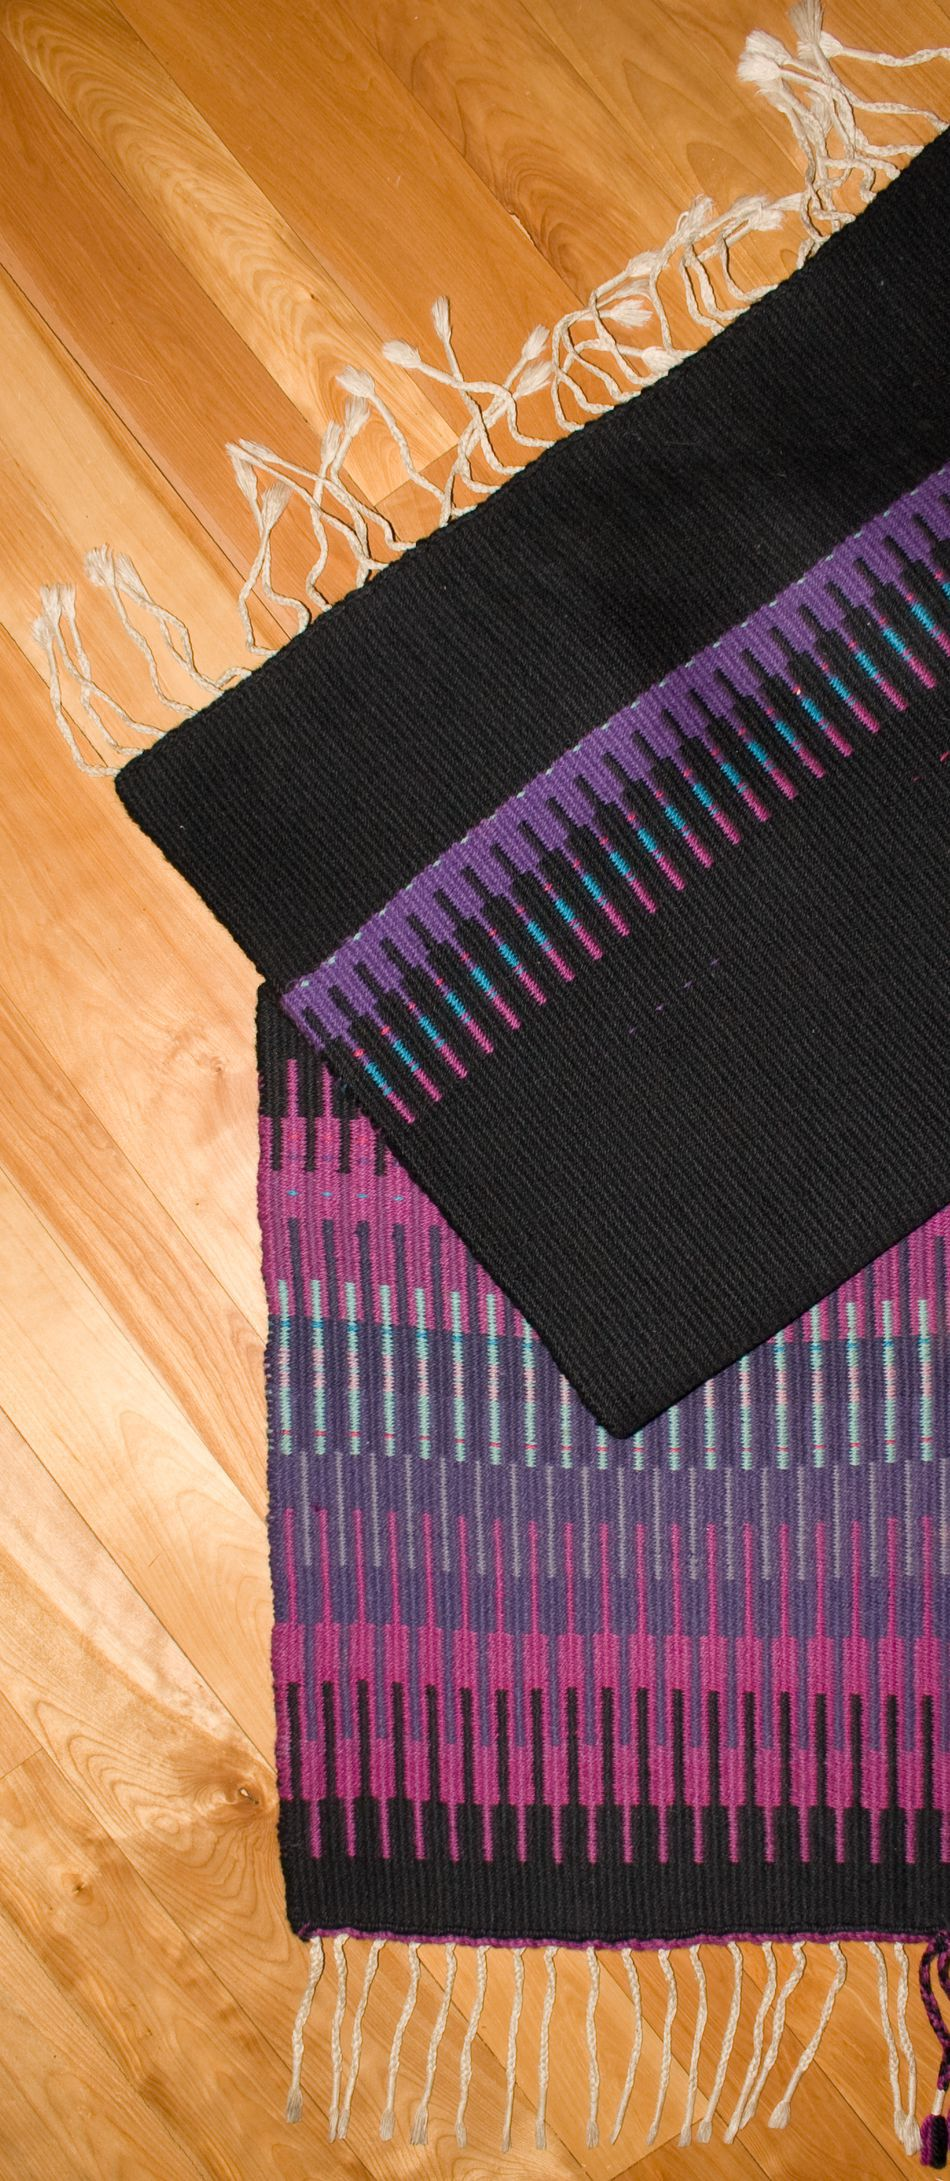 Weaving Patterns Aurora Borealis Rug  Halcyon Classic Rug Wool